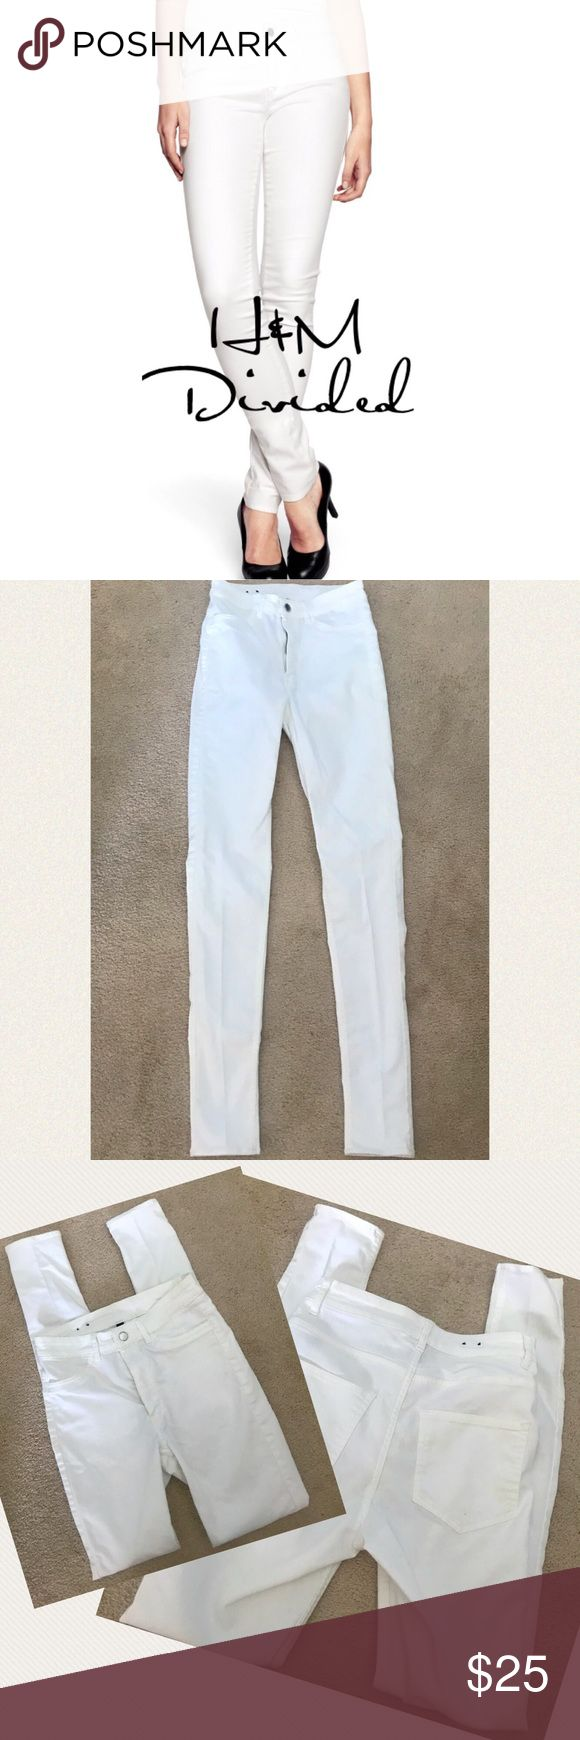 "H&M Divided white skinny jeans 6 H&M Divided brand white high waisted skinny jeans. They are new w/o tags so no flaws! 4 pockets, zip/button fly, belt loops. 70% cotton, 27% polyester, 3% elastin. Approx 12.5"" flat waist but stretches. 9.5"" rise, 31"" inseam💖 H&M Jeans Skinny"